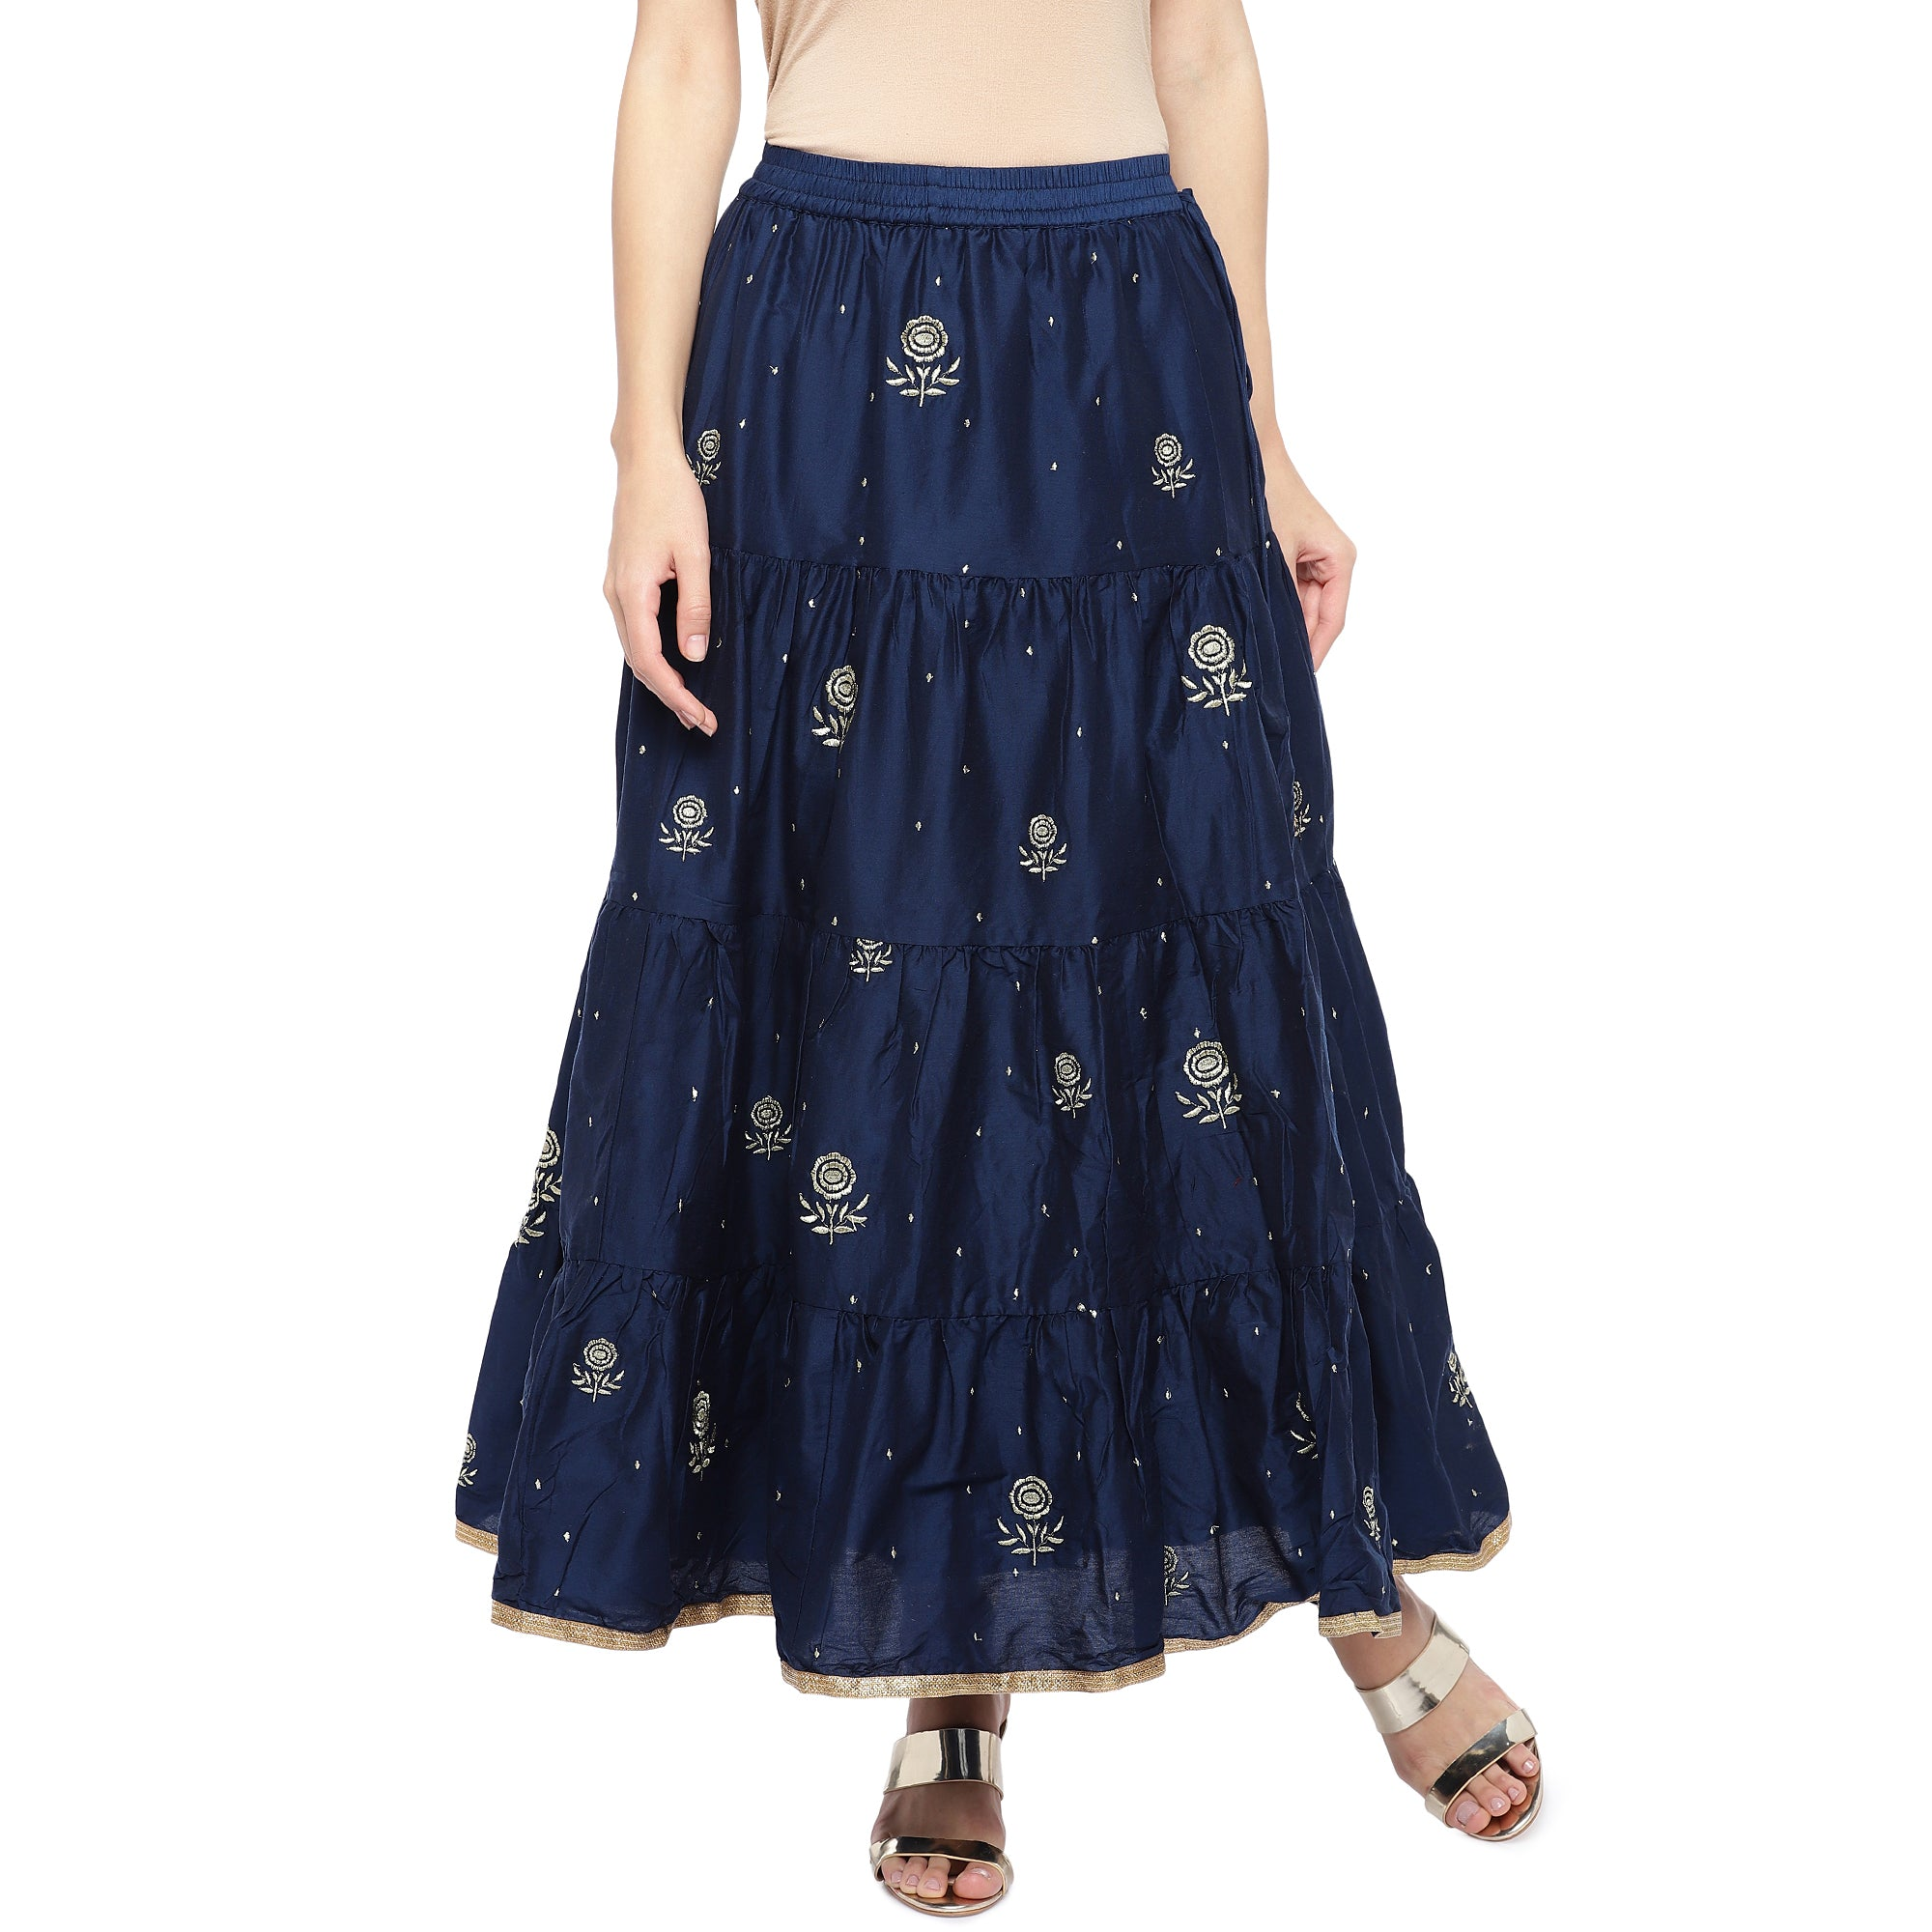 Navy Blue Embroidered Flared Maxi Ethnic Skirt-1